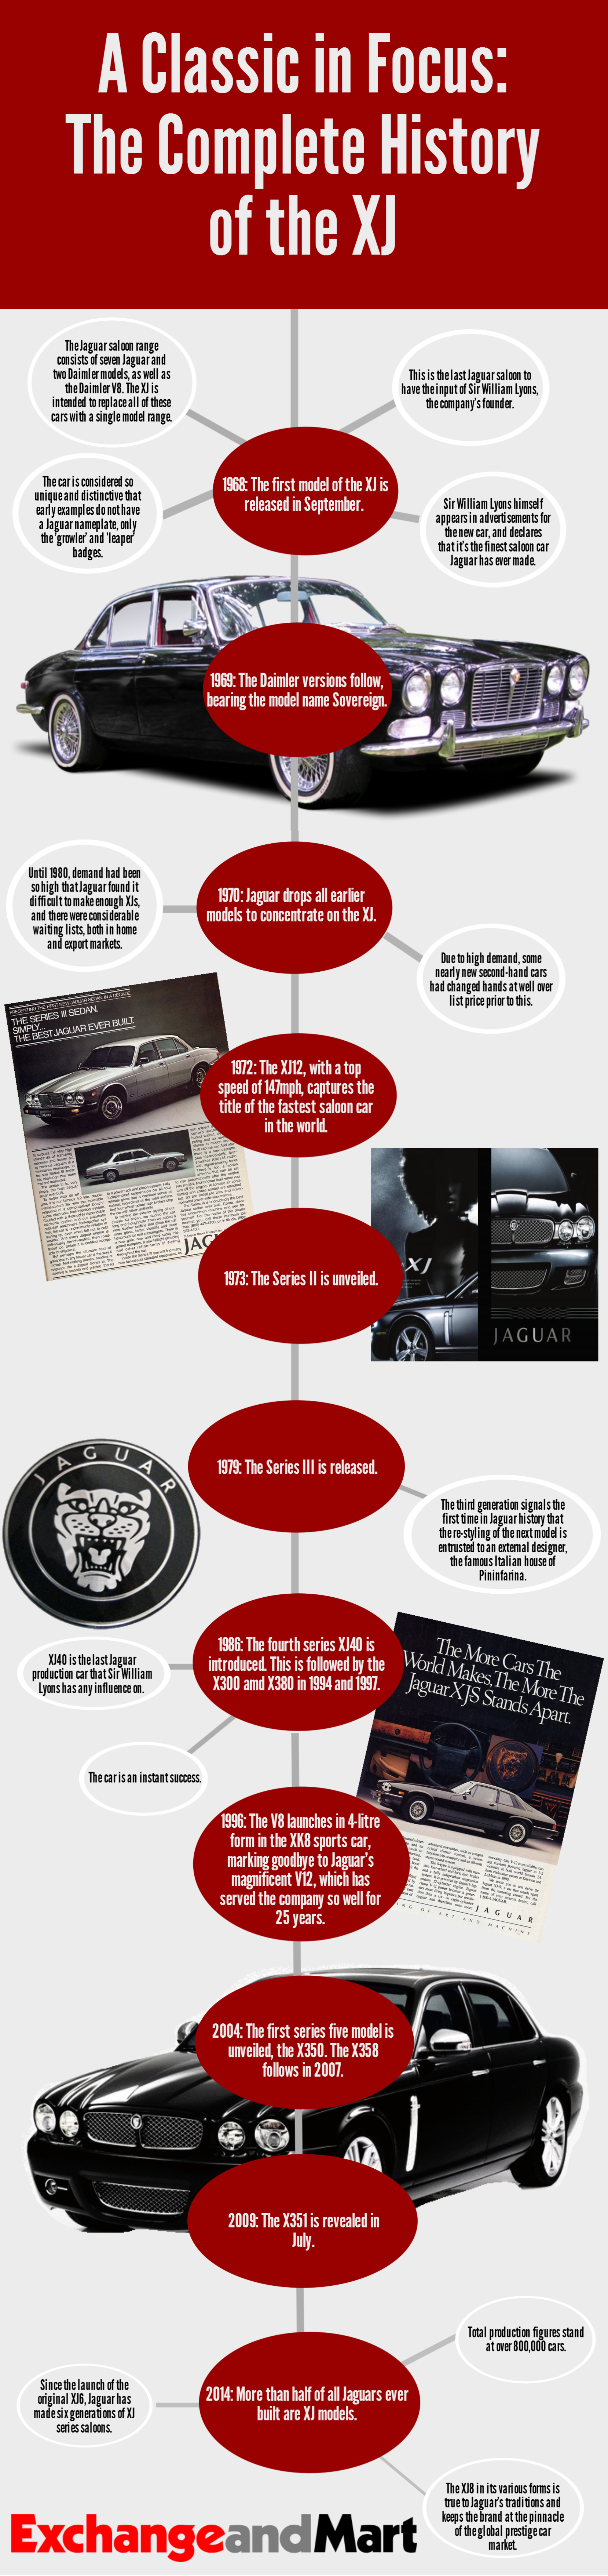 Complete history of the Jaguar XJ